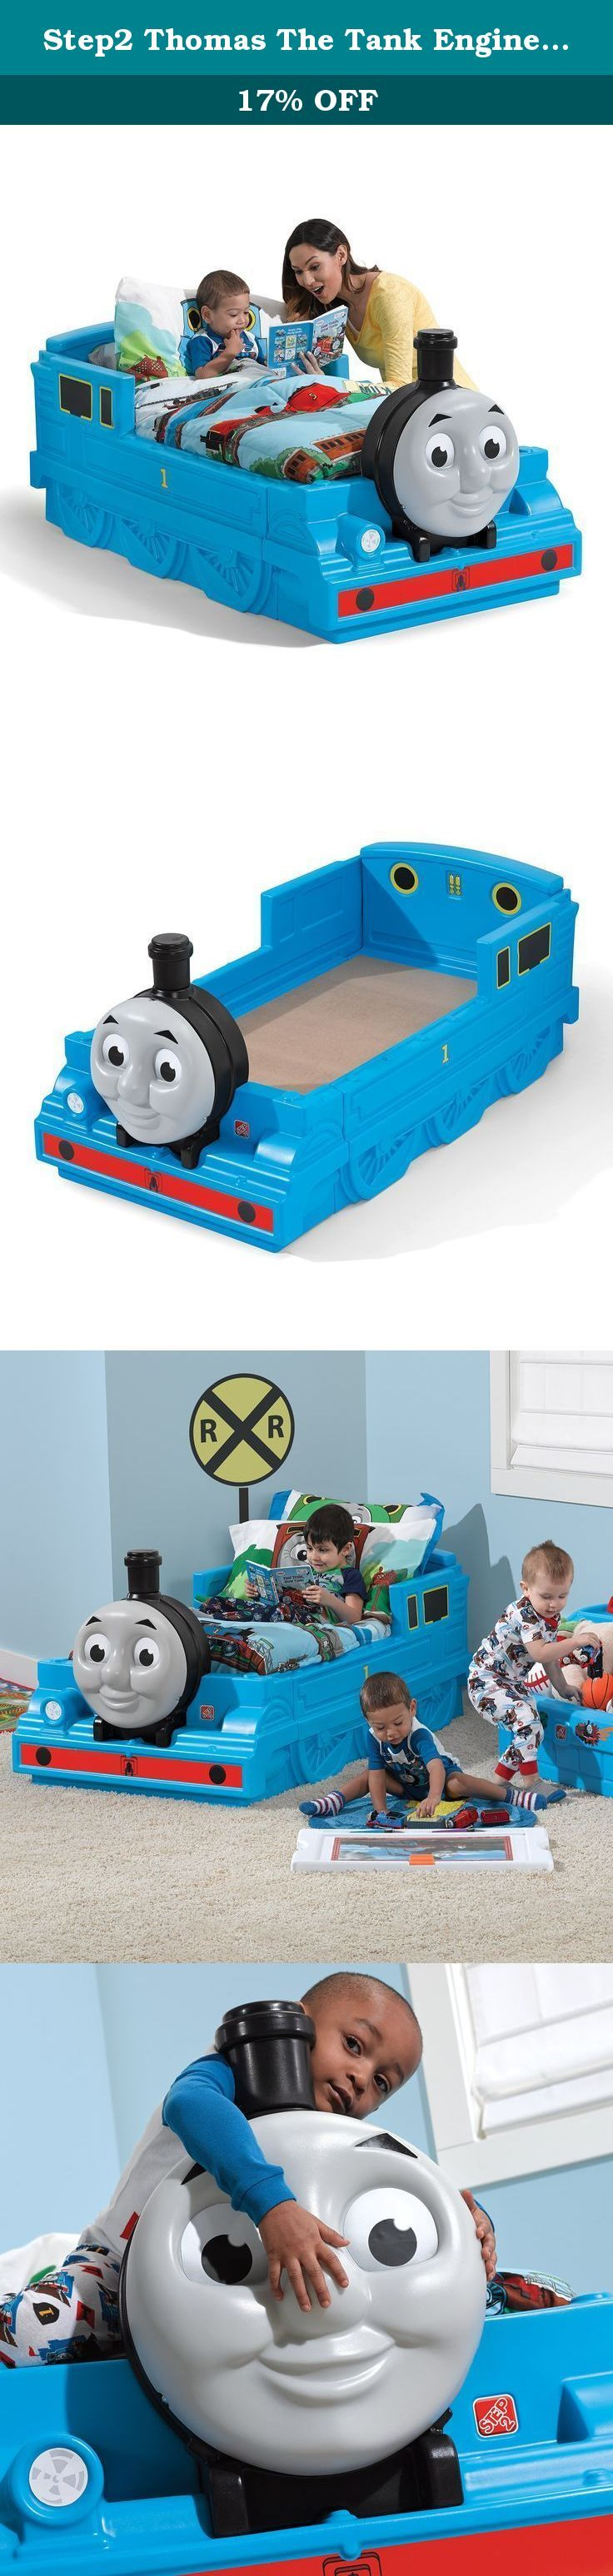 Step2 Thomas The Tank Engine Toddler Bed. All aboard to dreamland in the Thomas the Tank Engine Toddler Bed by Step2. Little train conductors will love that this bed resembles their favorite tank engine. This train bed promotes imaginative play as kids pretend to go on an adventure with Thomas along the island of Sodor. The Thomas the Tank Engine Toddler Bed is the cutest train bed you've ever seen! Made in USA with imported parts.